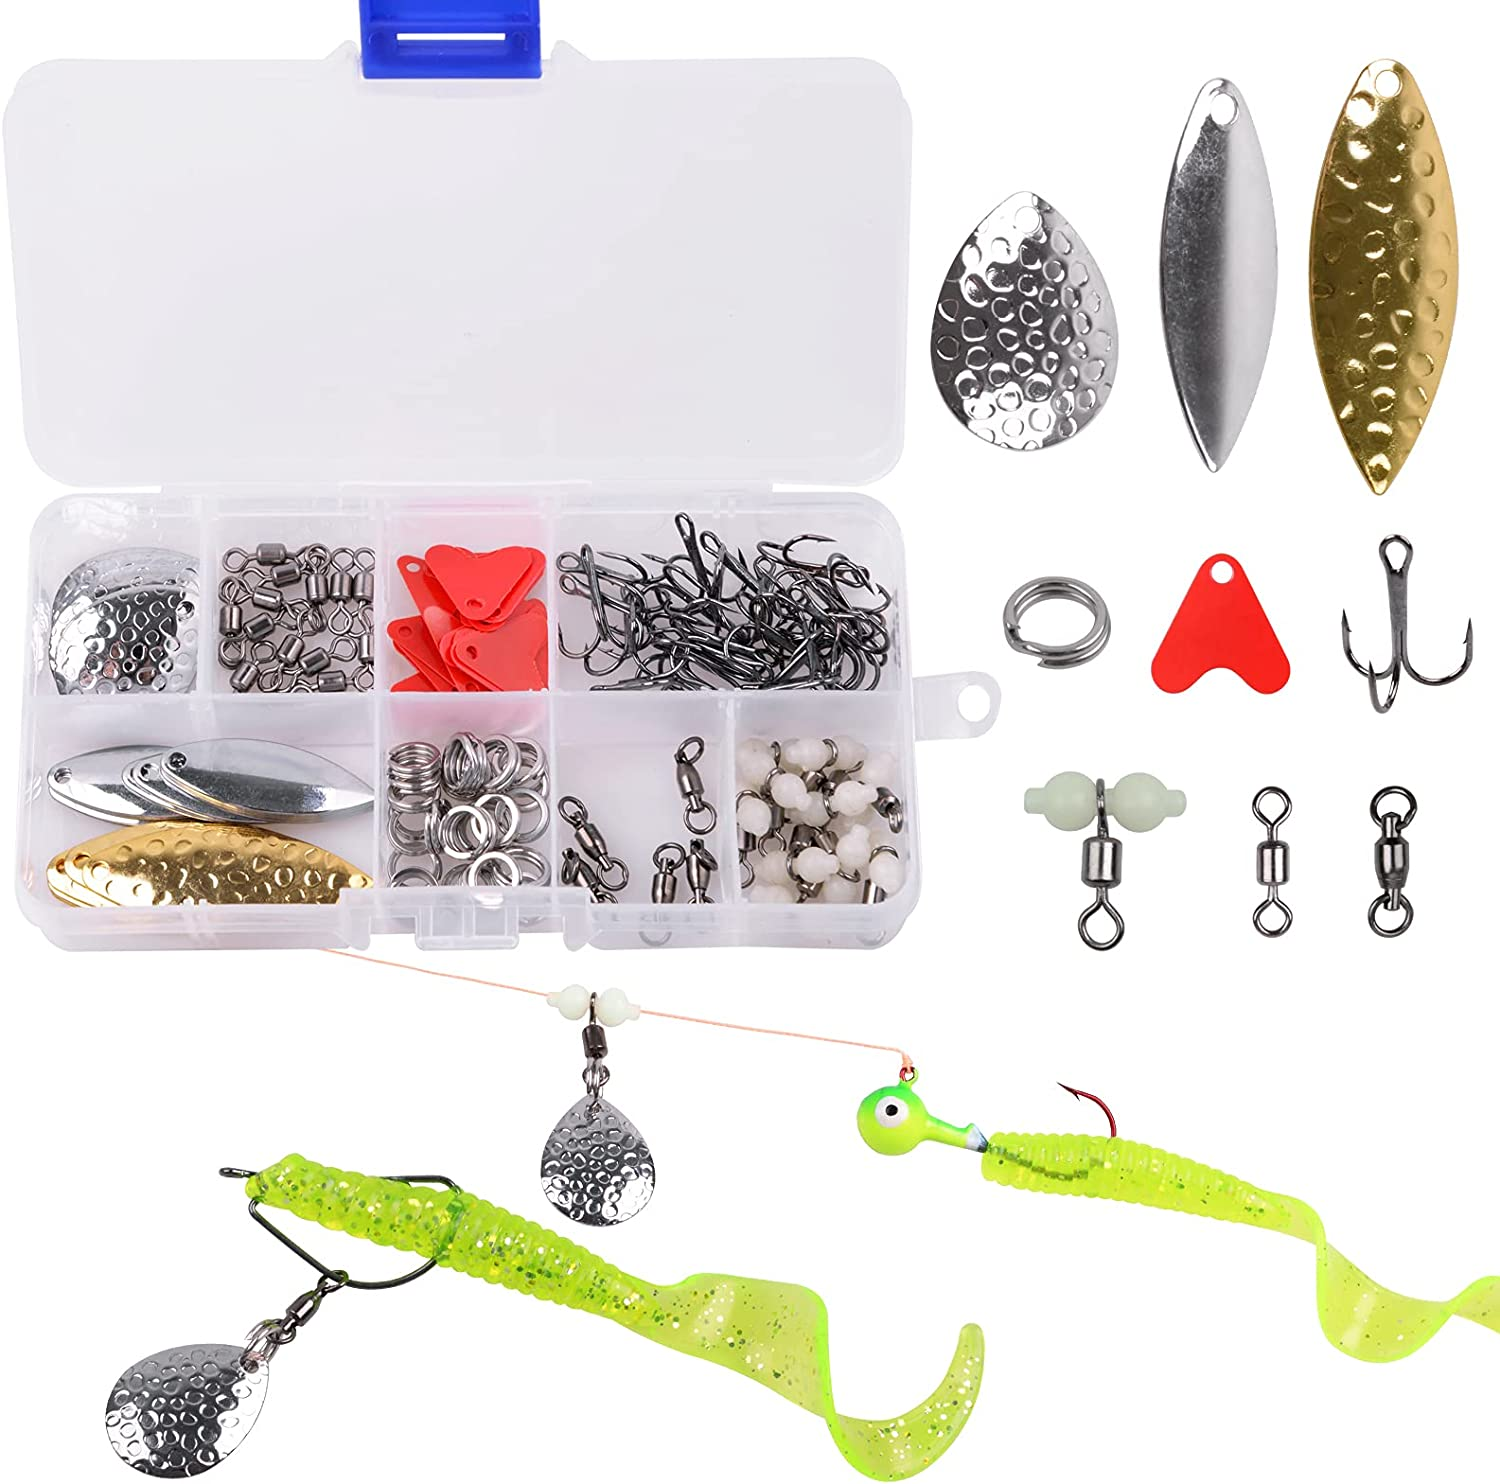 Details about  / Fishing Lures DIY Kit Lure Making Kit Fishing Spoon Rig 176pcs Lures DIY Kit